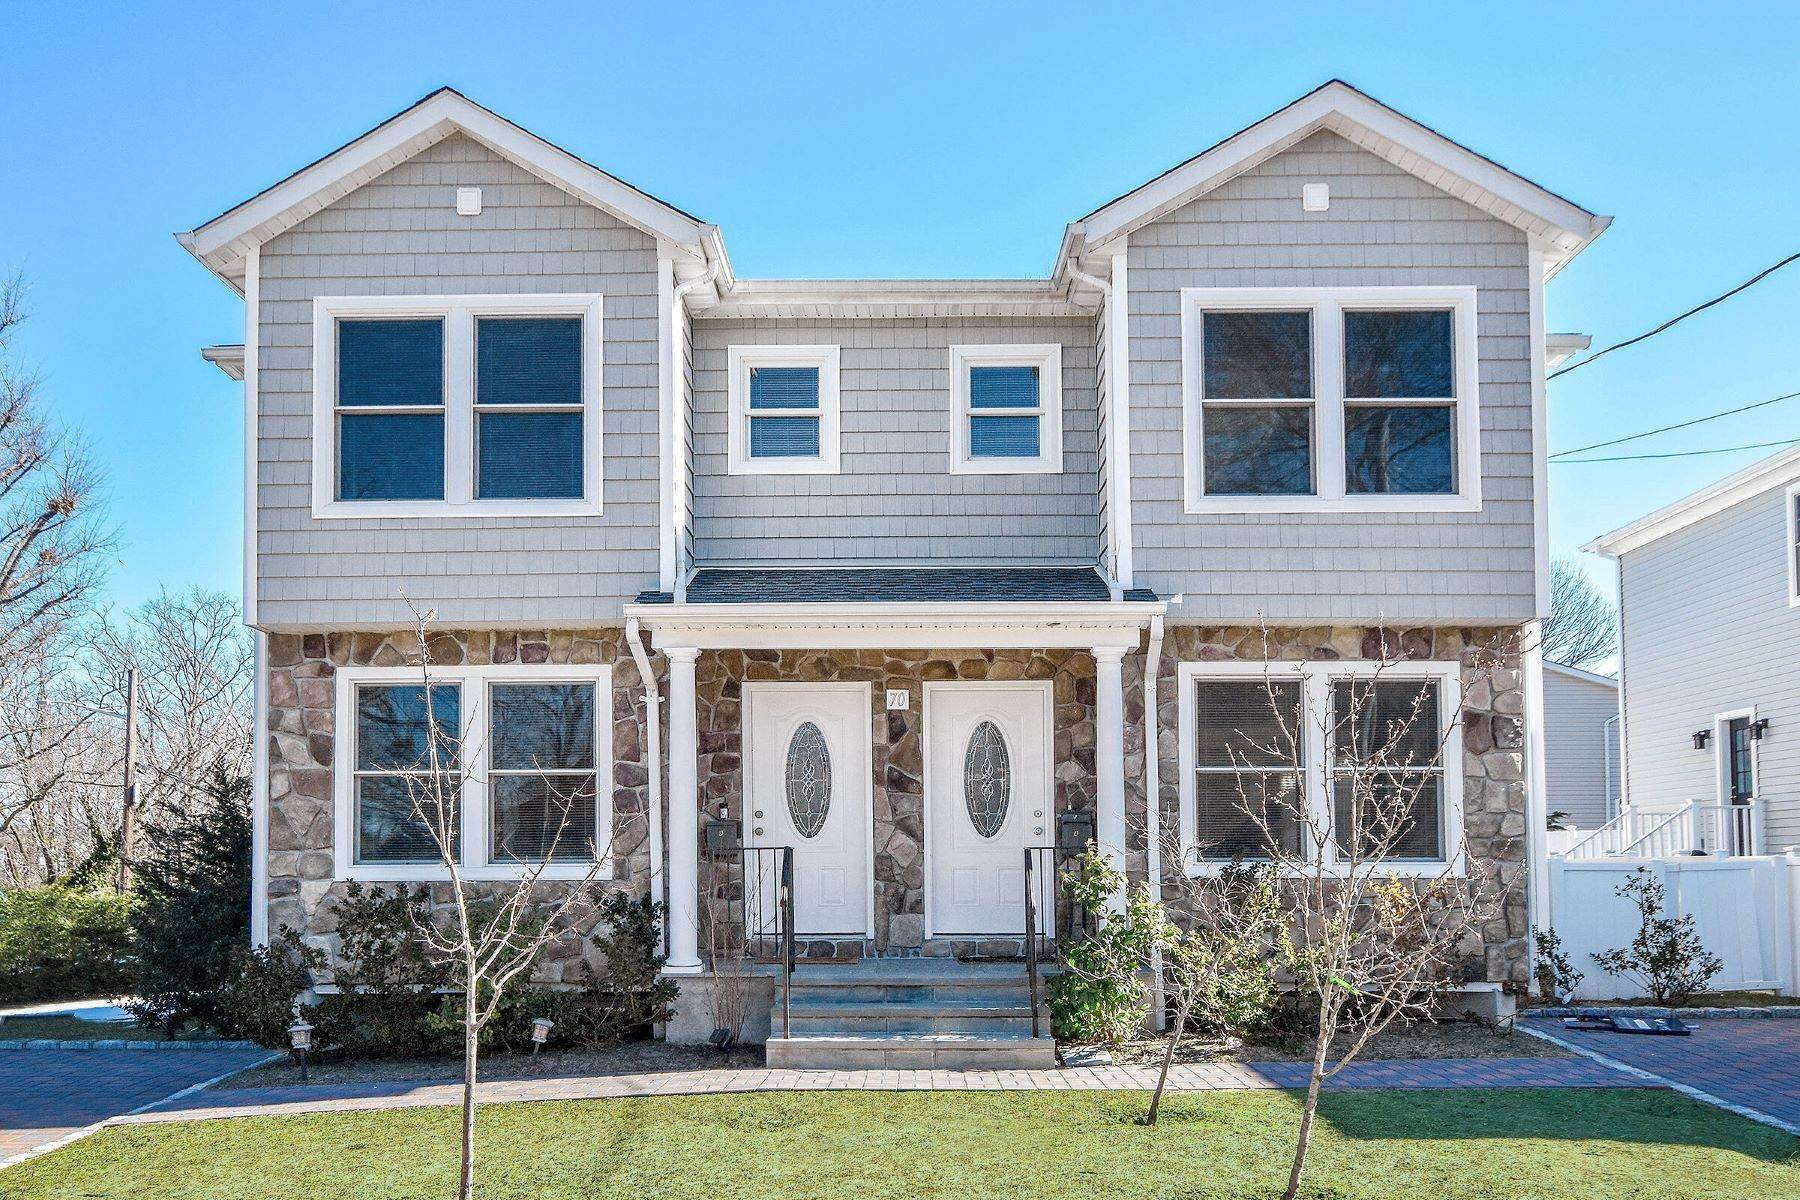 Multi-Family Homes for Sale at 70 Sagamore Hill Road, Port Washington, Ny, 11050 70 Sagamore Hill Road Port Washington, New York 11050 United States